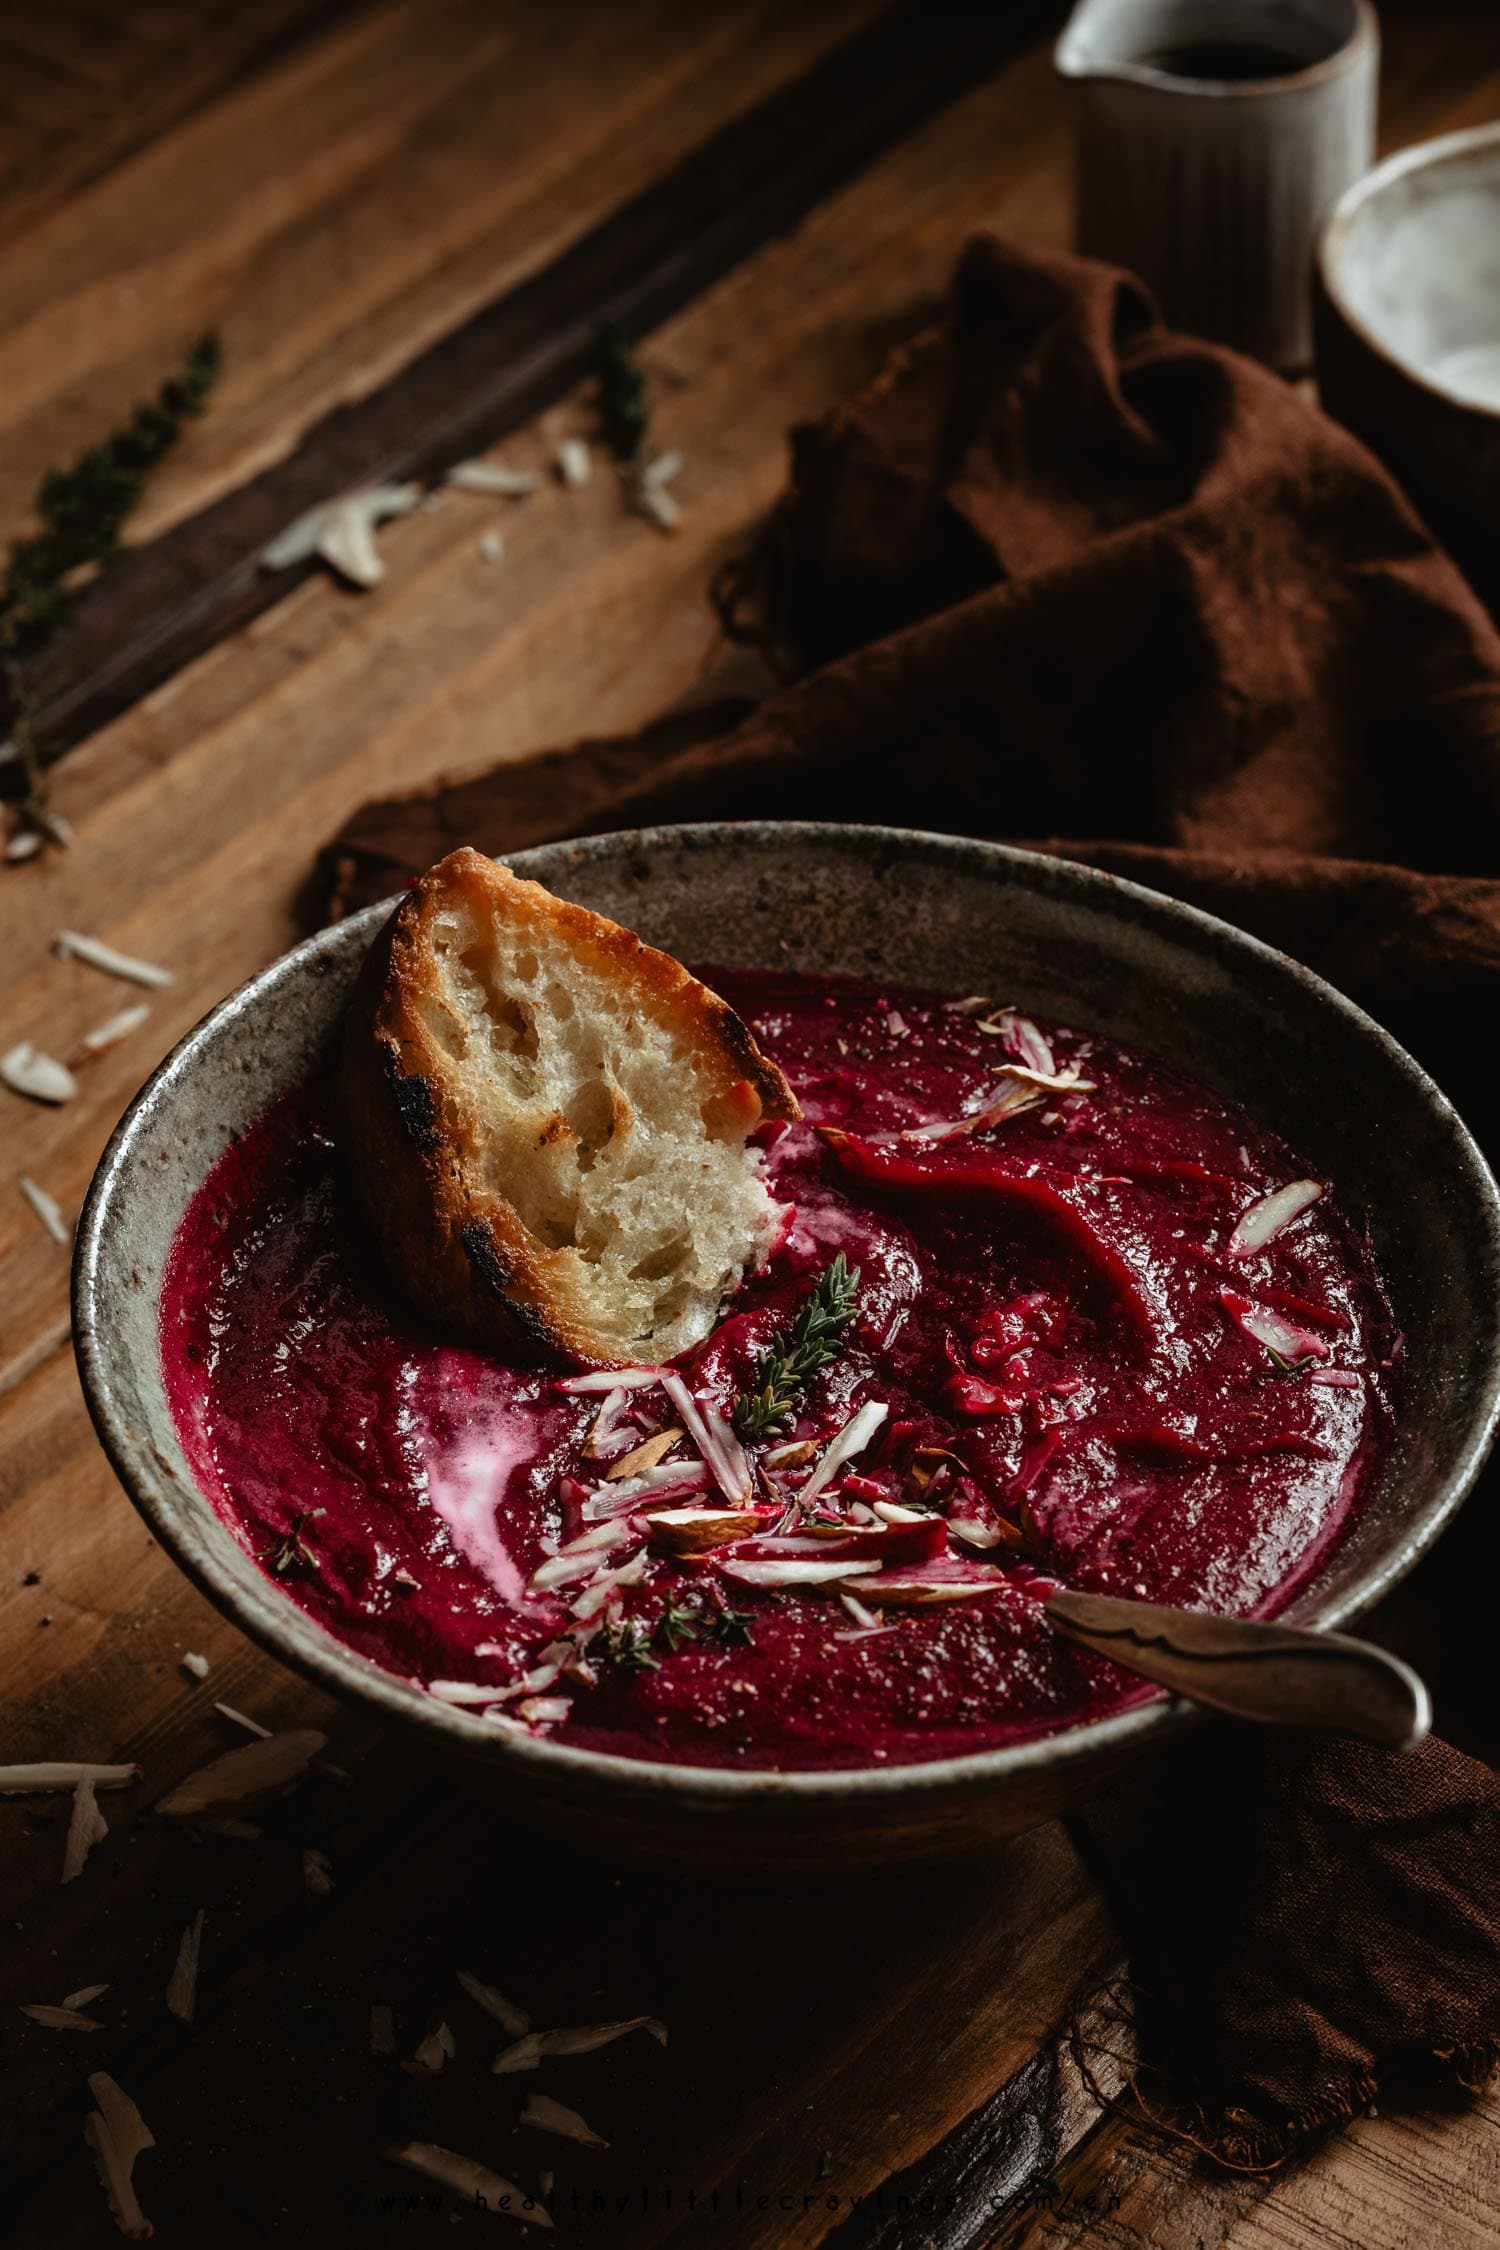 Wintery beetroot soup with ginger and balsamic vinegar